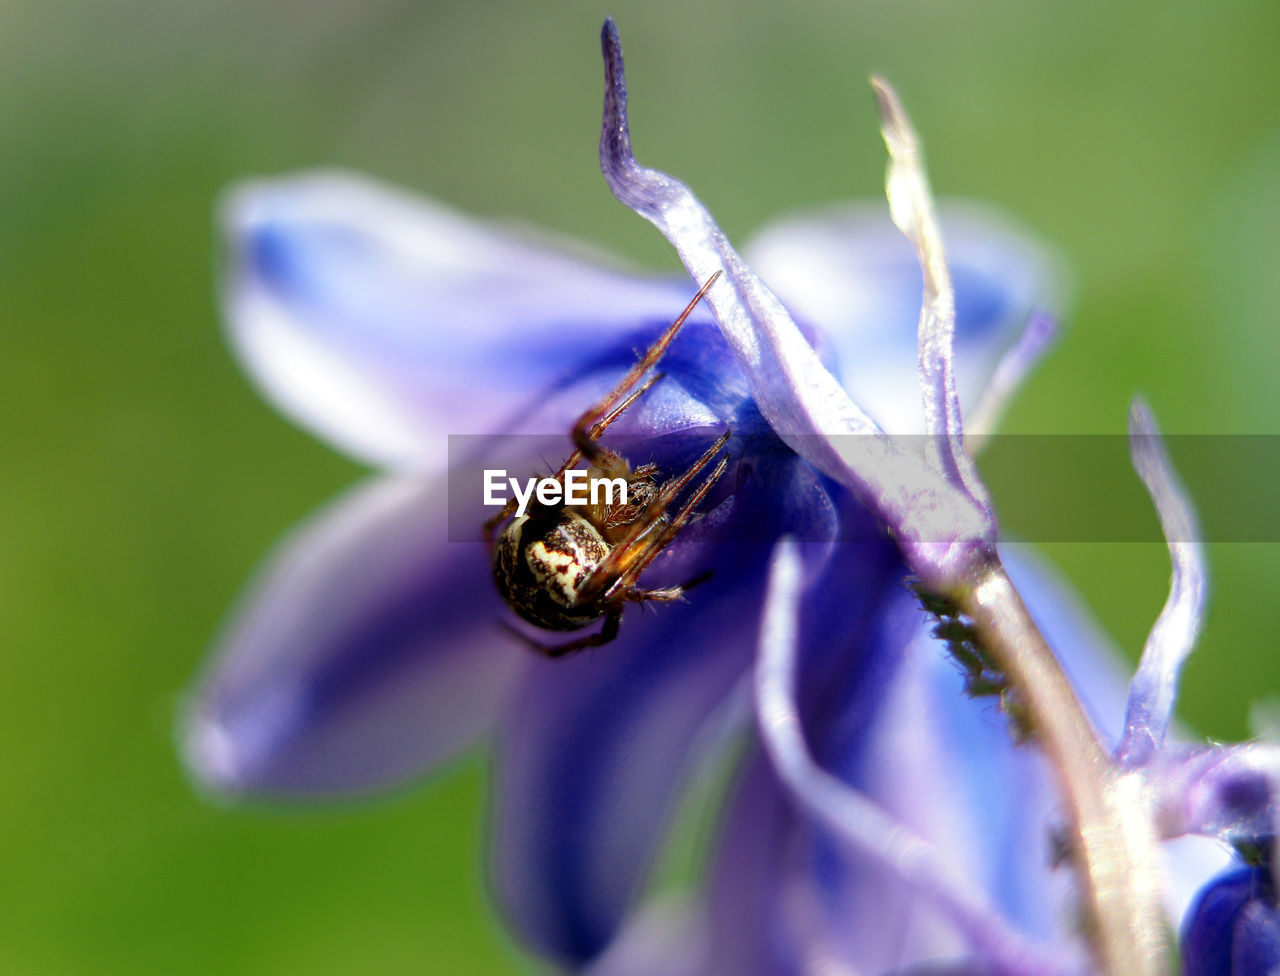 flower, flowering plant, plant, animal themes, invertebrate, animal wildlife, animals in the wild, animal, beauty in nature, insect, one animal, petal, fragility, purple, close-up, vulnerability, growth, flower head, nature, freshness, no people, pollination, outdoors, pollen